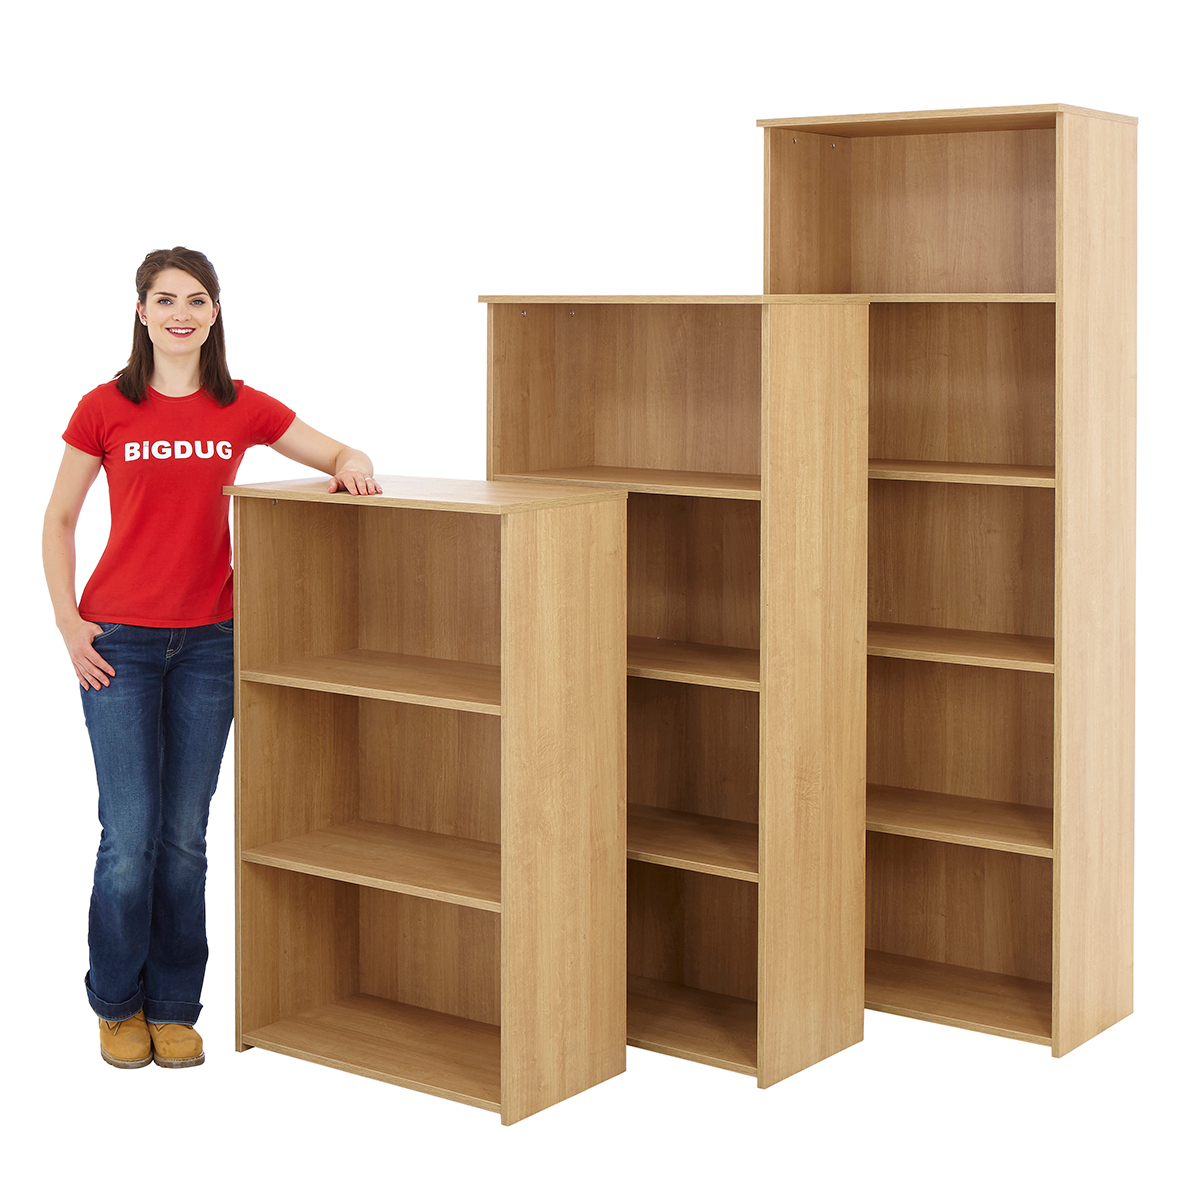 Marvelous photograph of Oak Office Bookcase 4/5/6 Tier Shelving Unit Wooden Office Furniture  with #B21921 color and 1200x1200 pixels